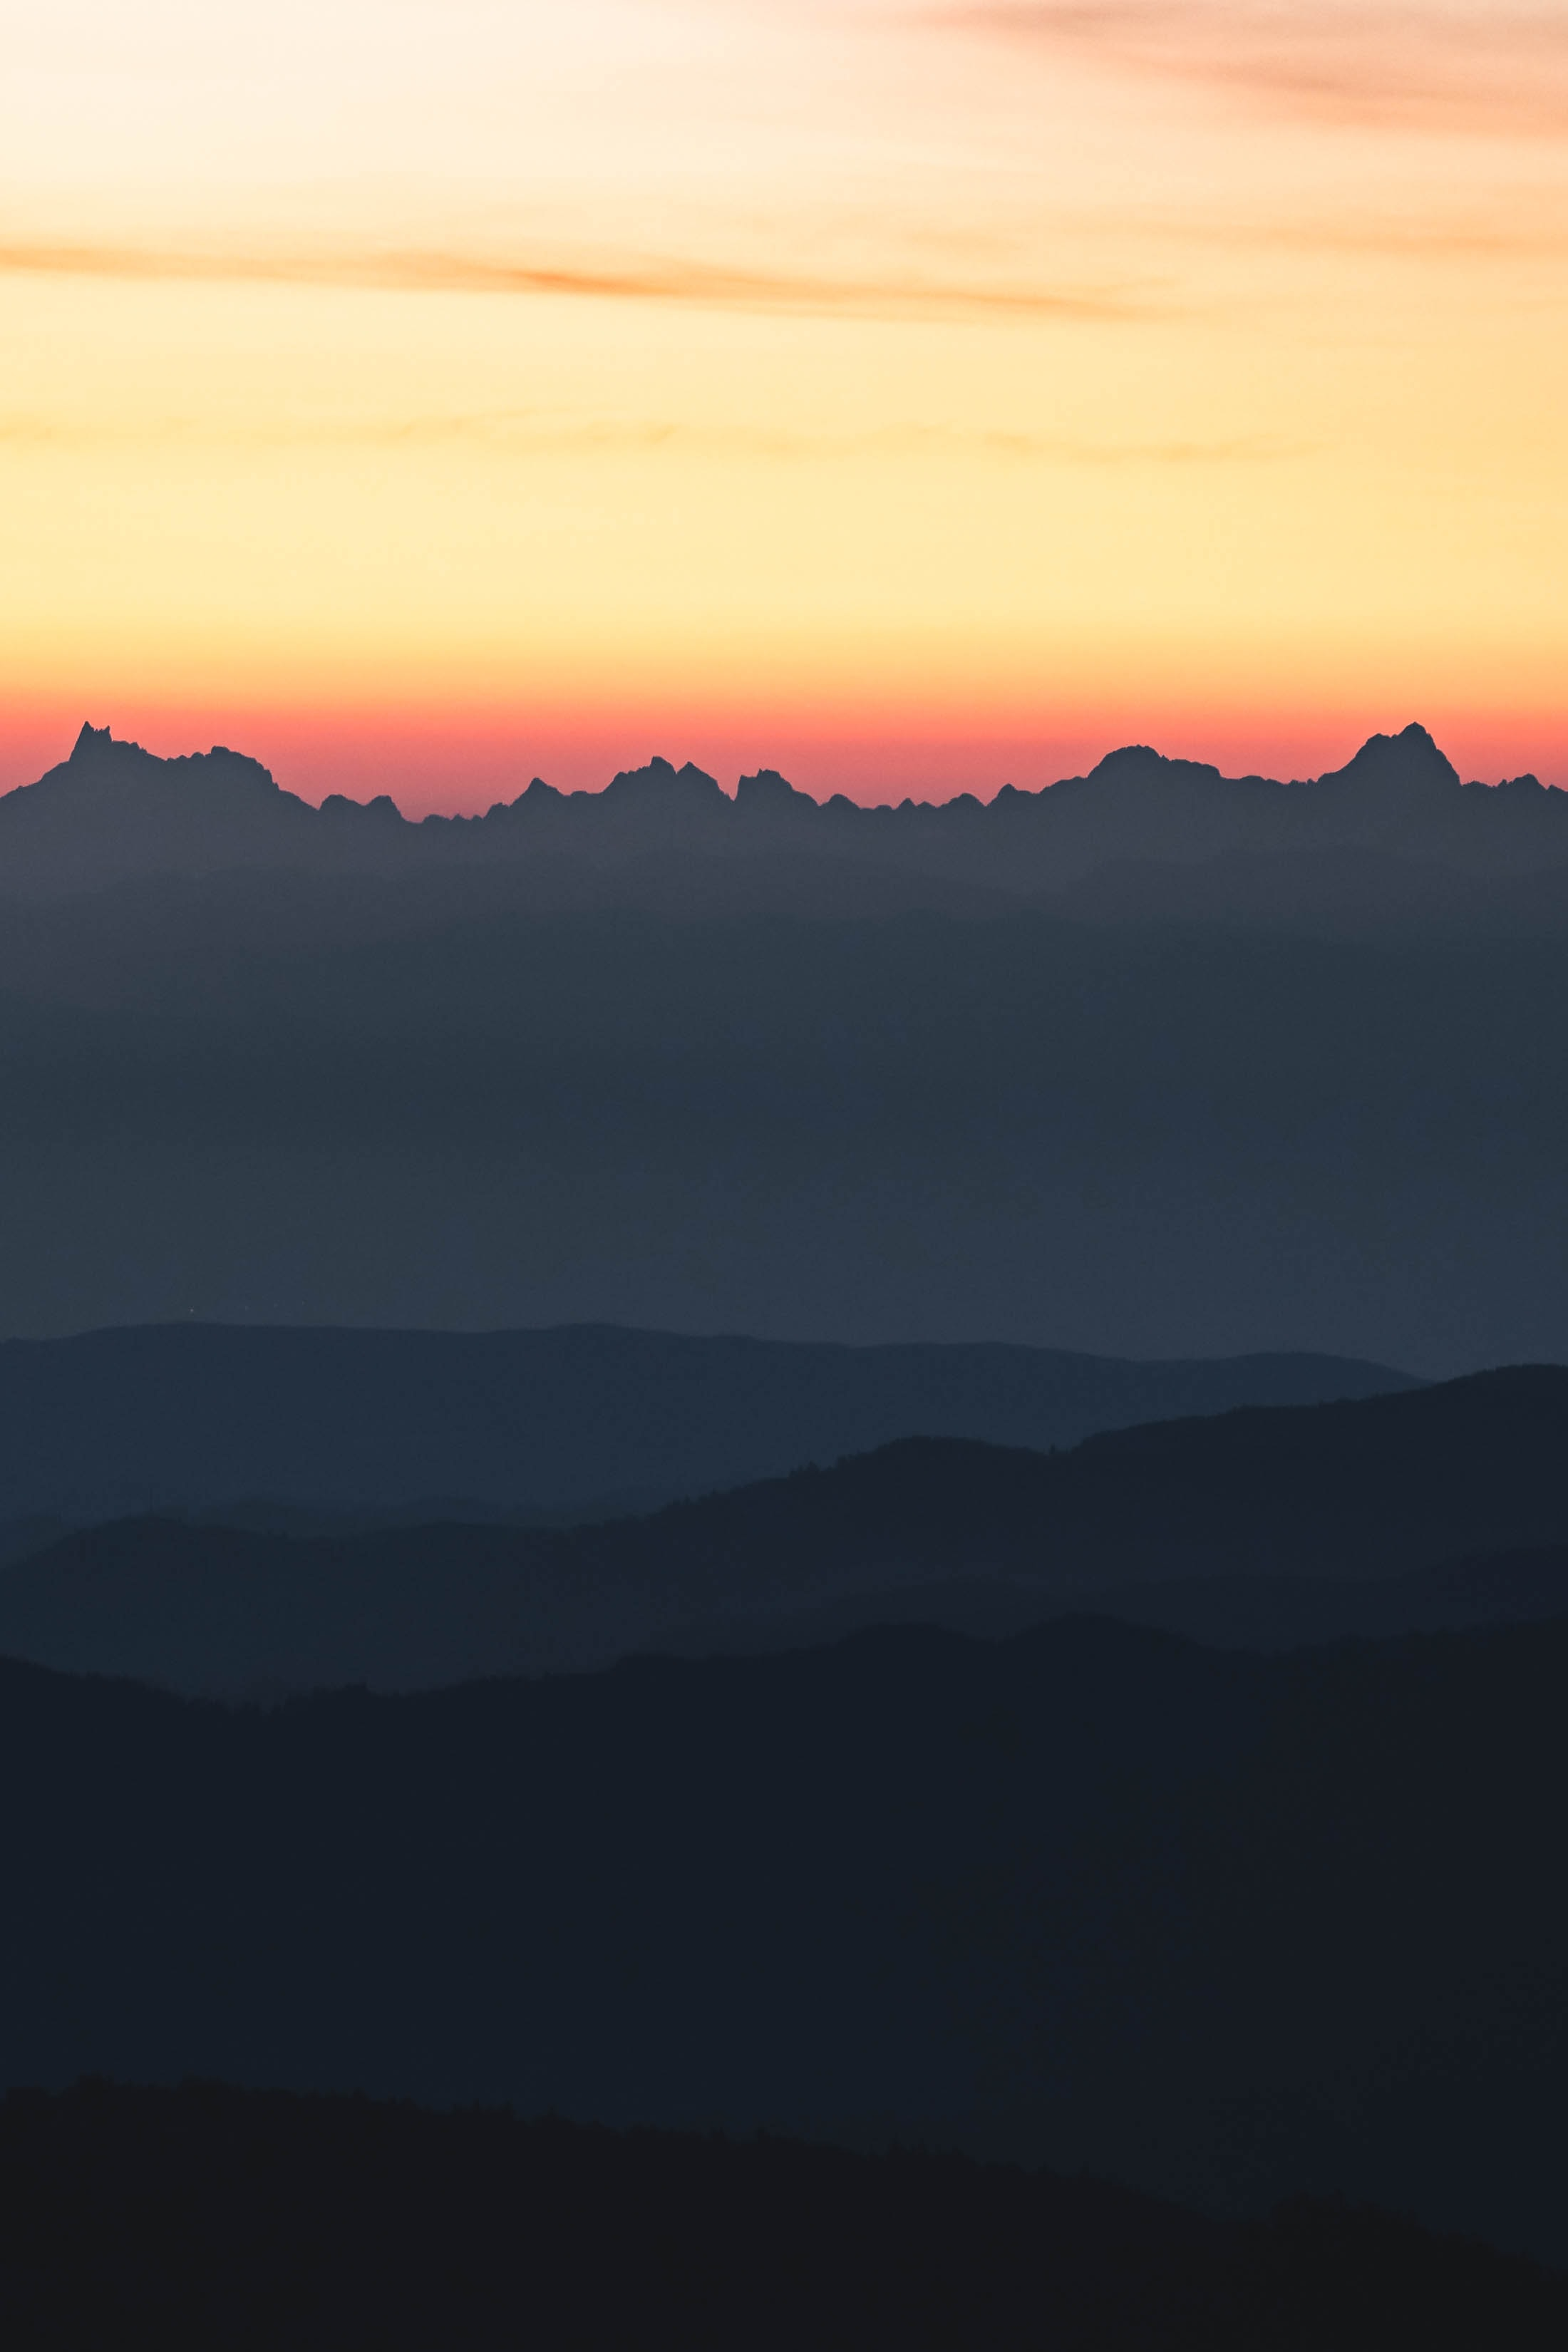 silhouette of mountain during sunse